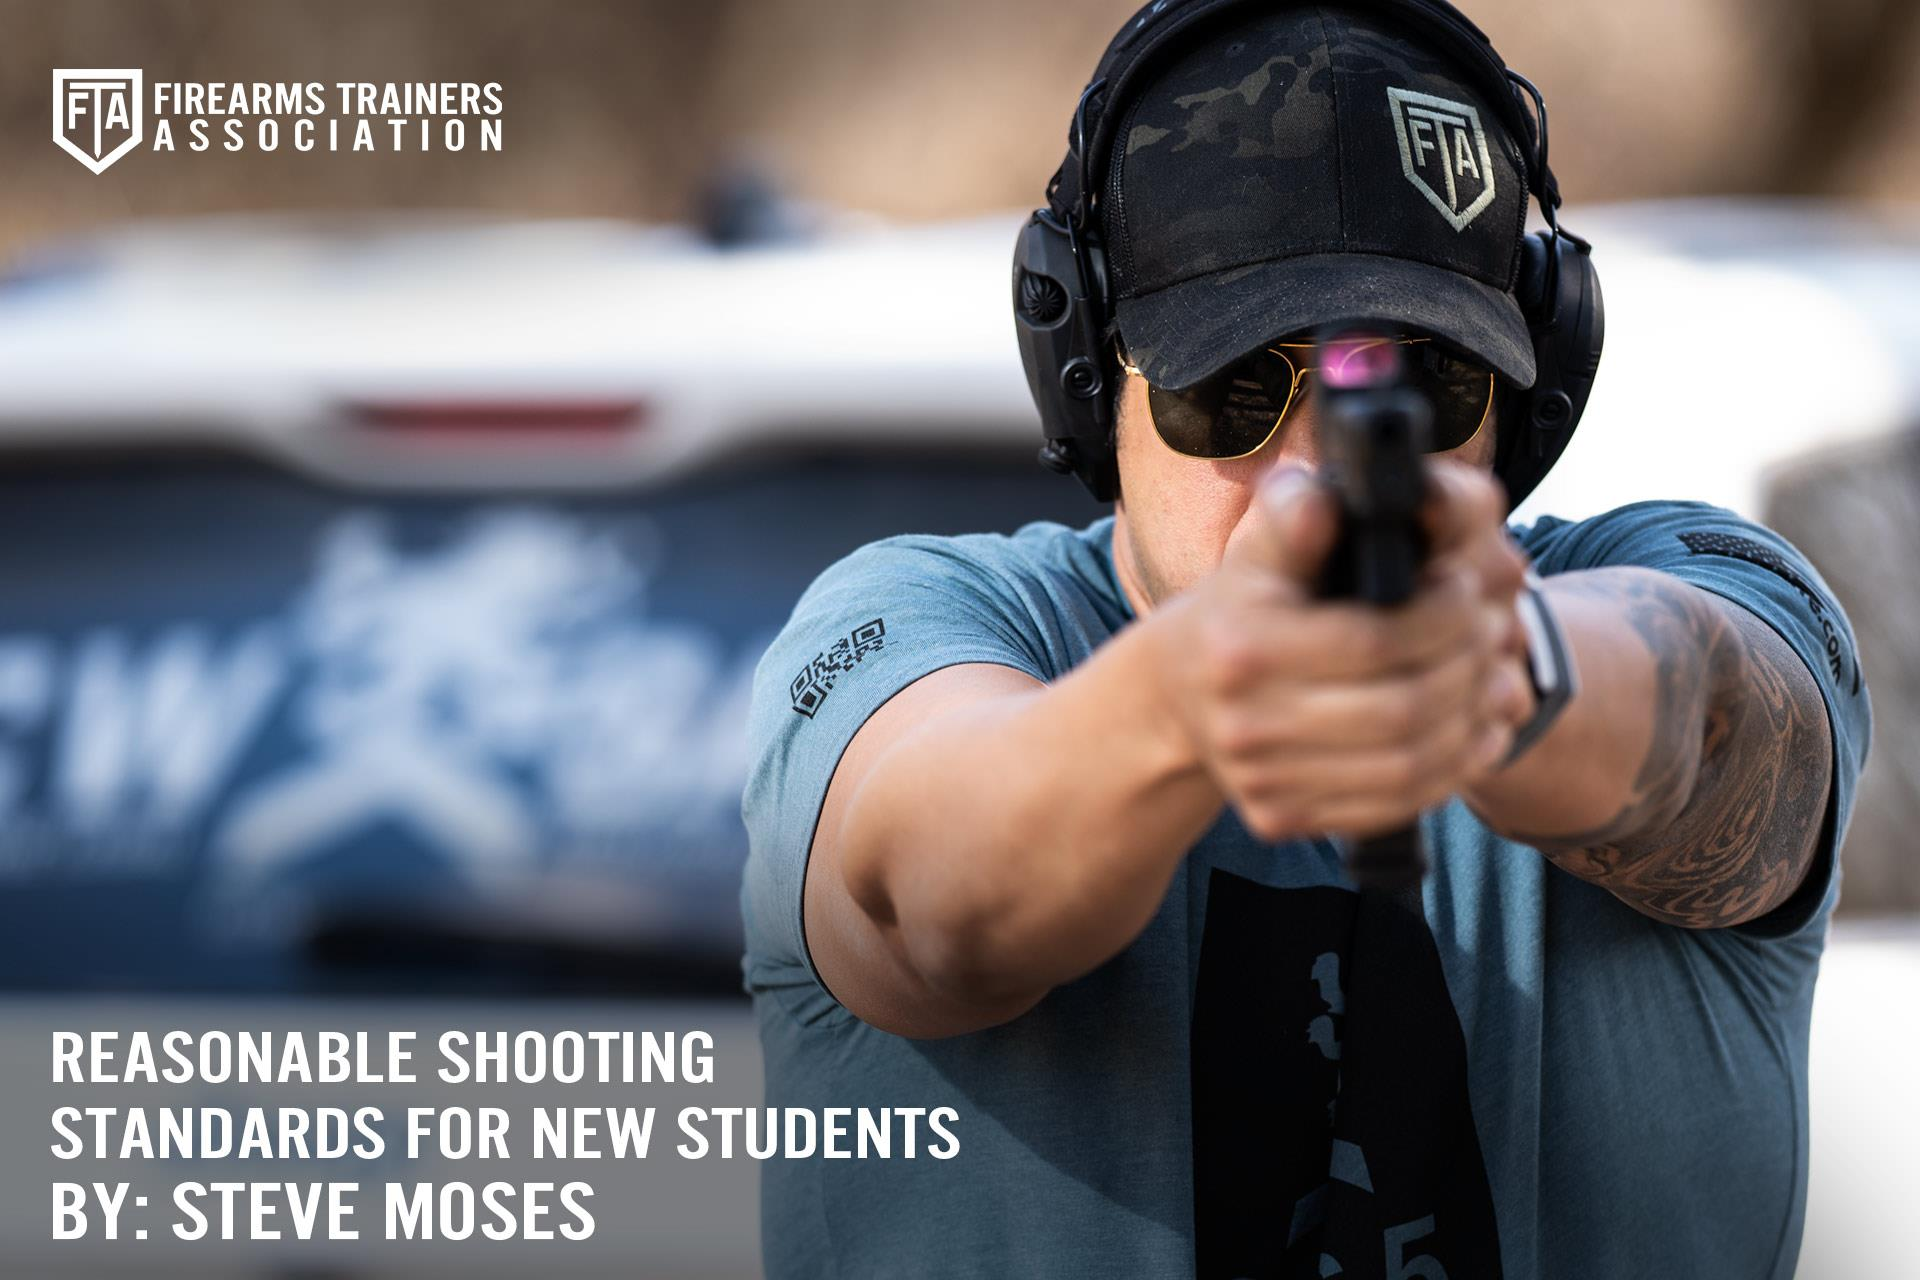 REASONABLE SHOOTING STANDARDS FOR NEW STUDENTS